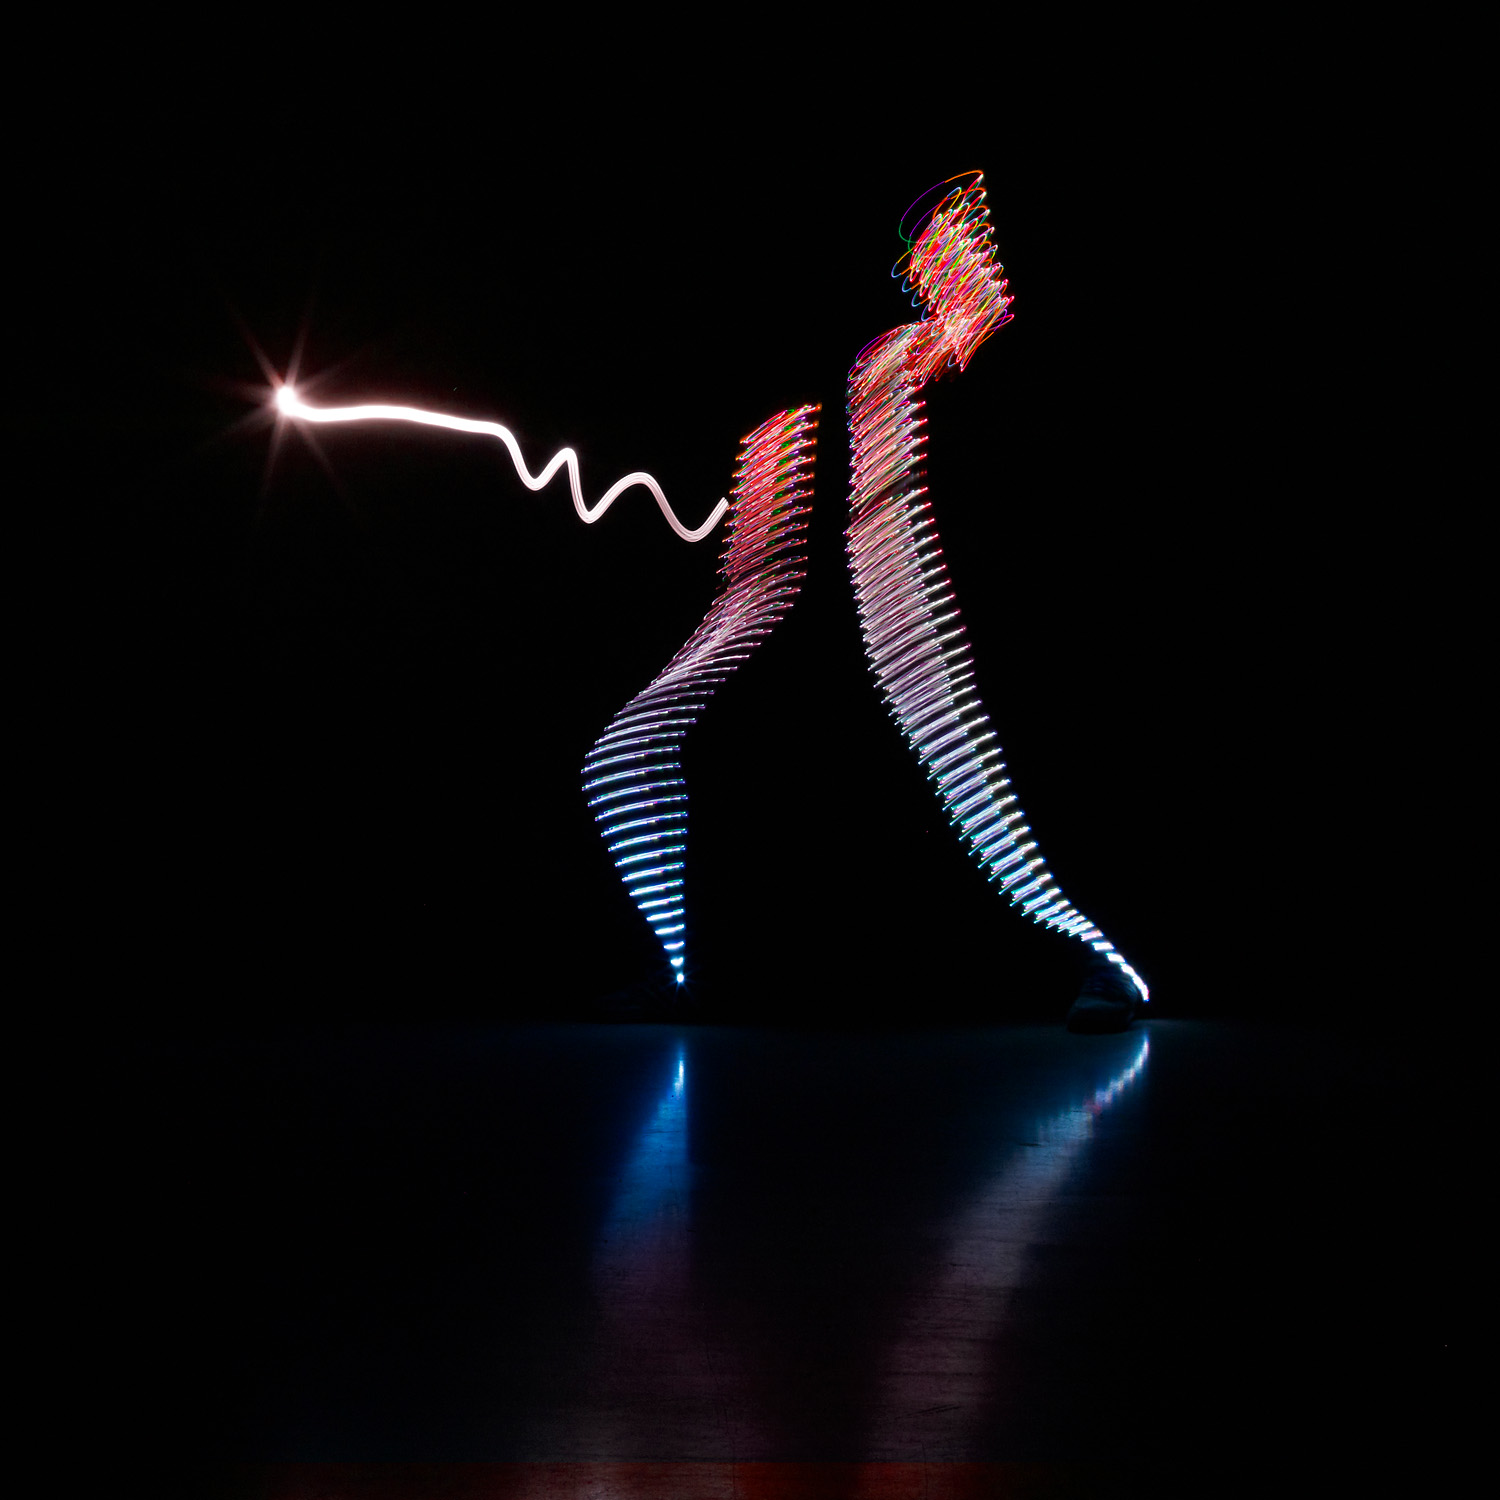 scherma calendario fencing light painting